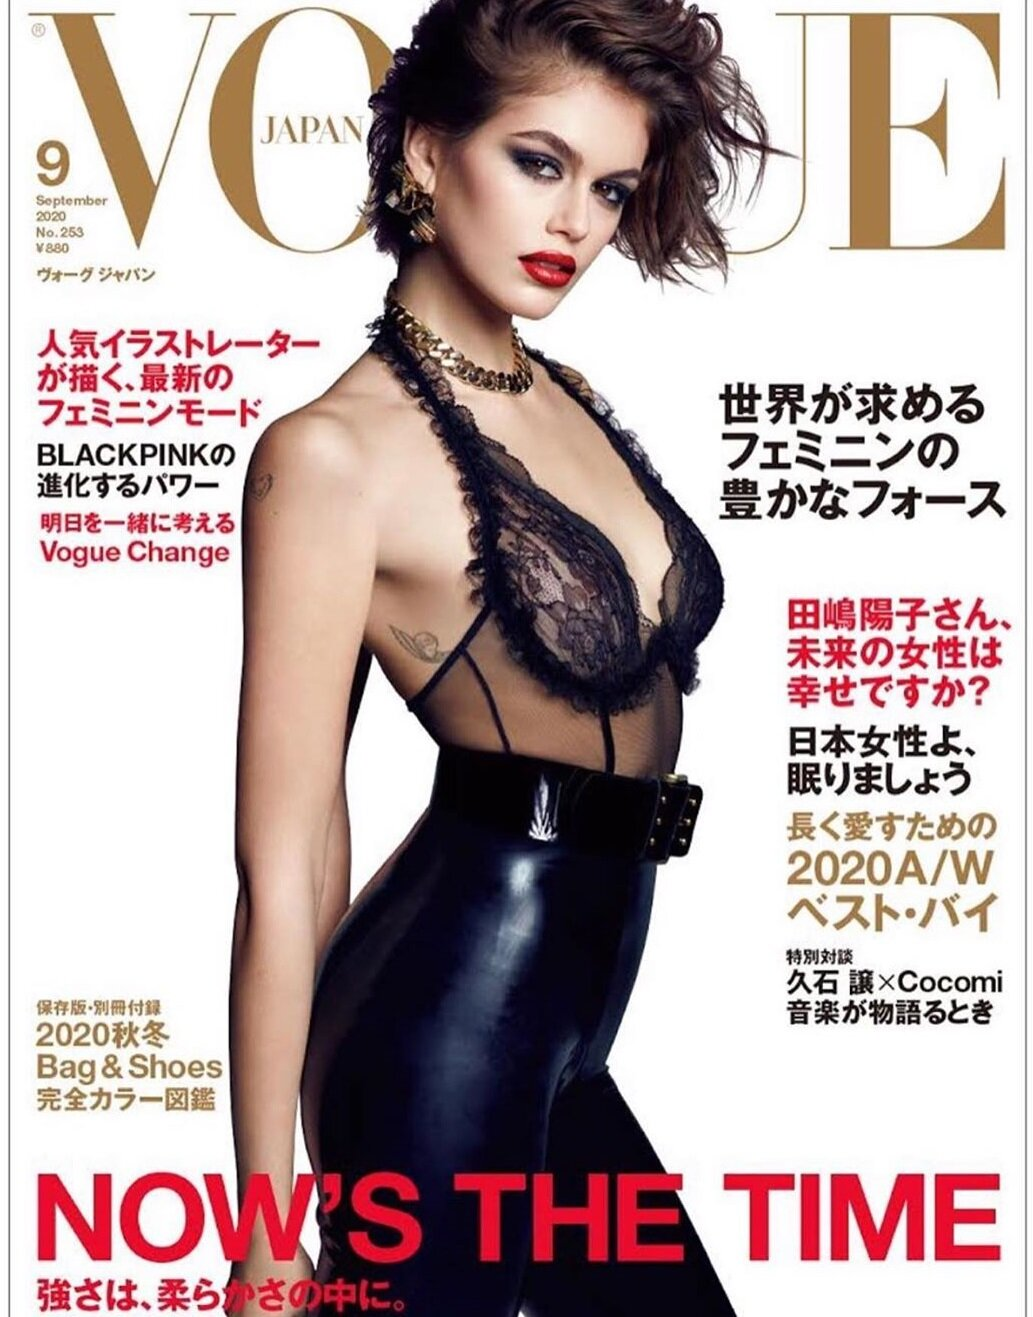 Kaia Gerber for Vogue Japan September 2020 covers. Photographed by Luigi & Iango.